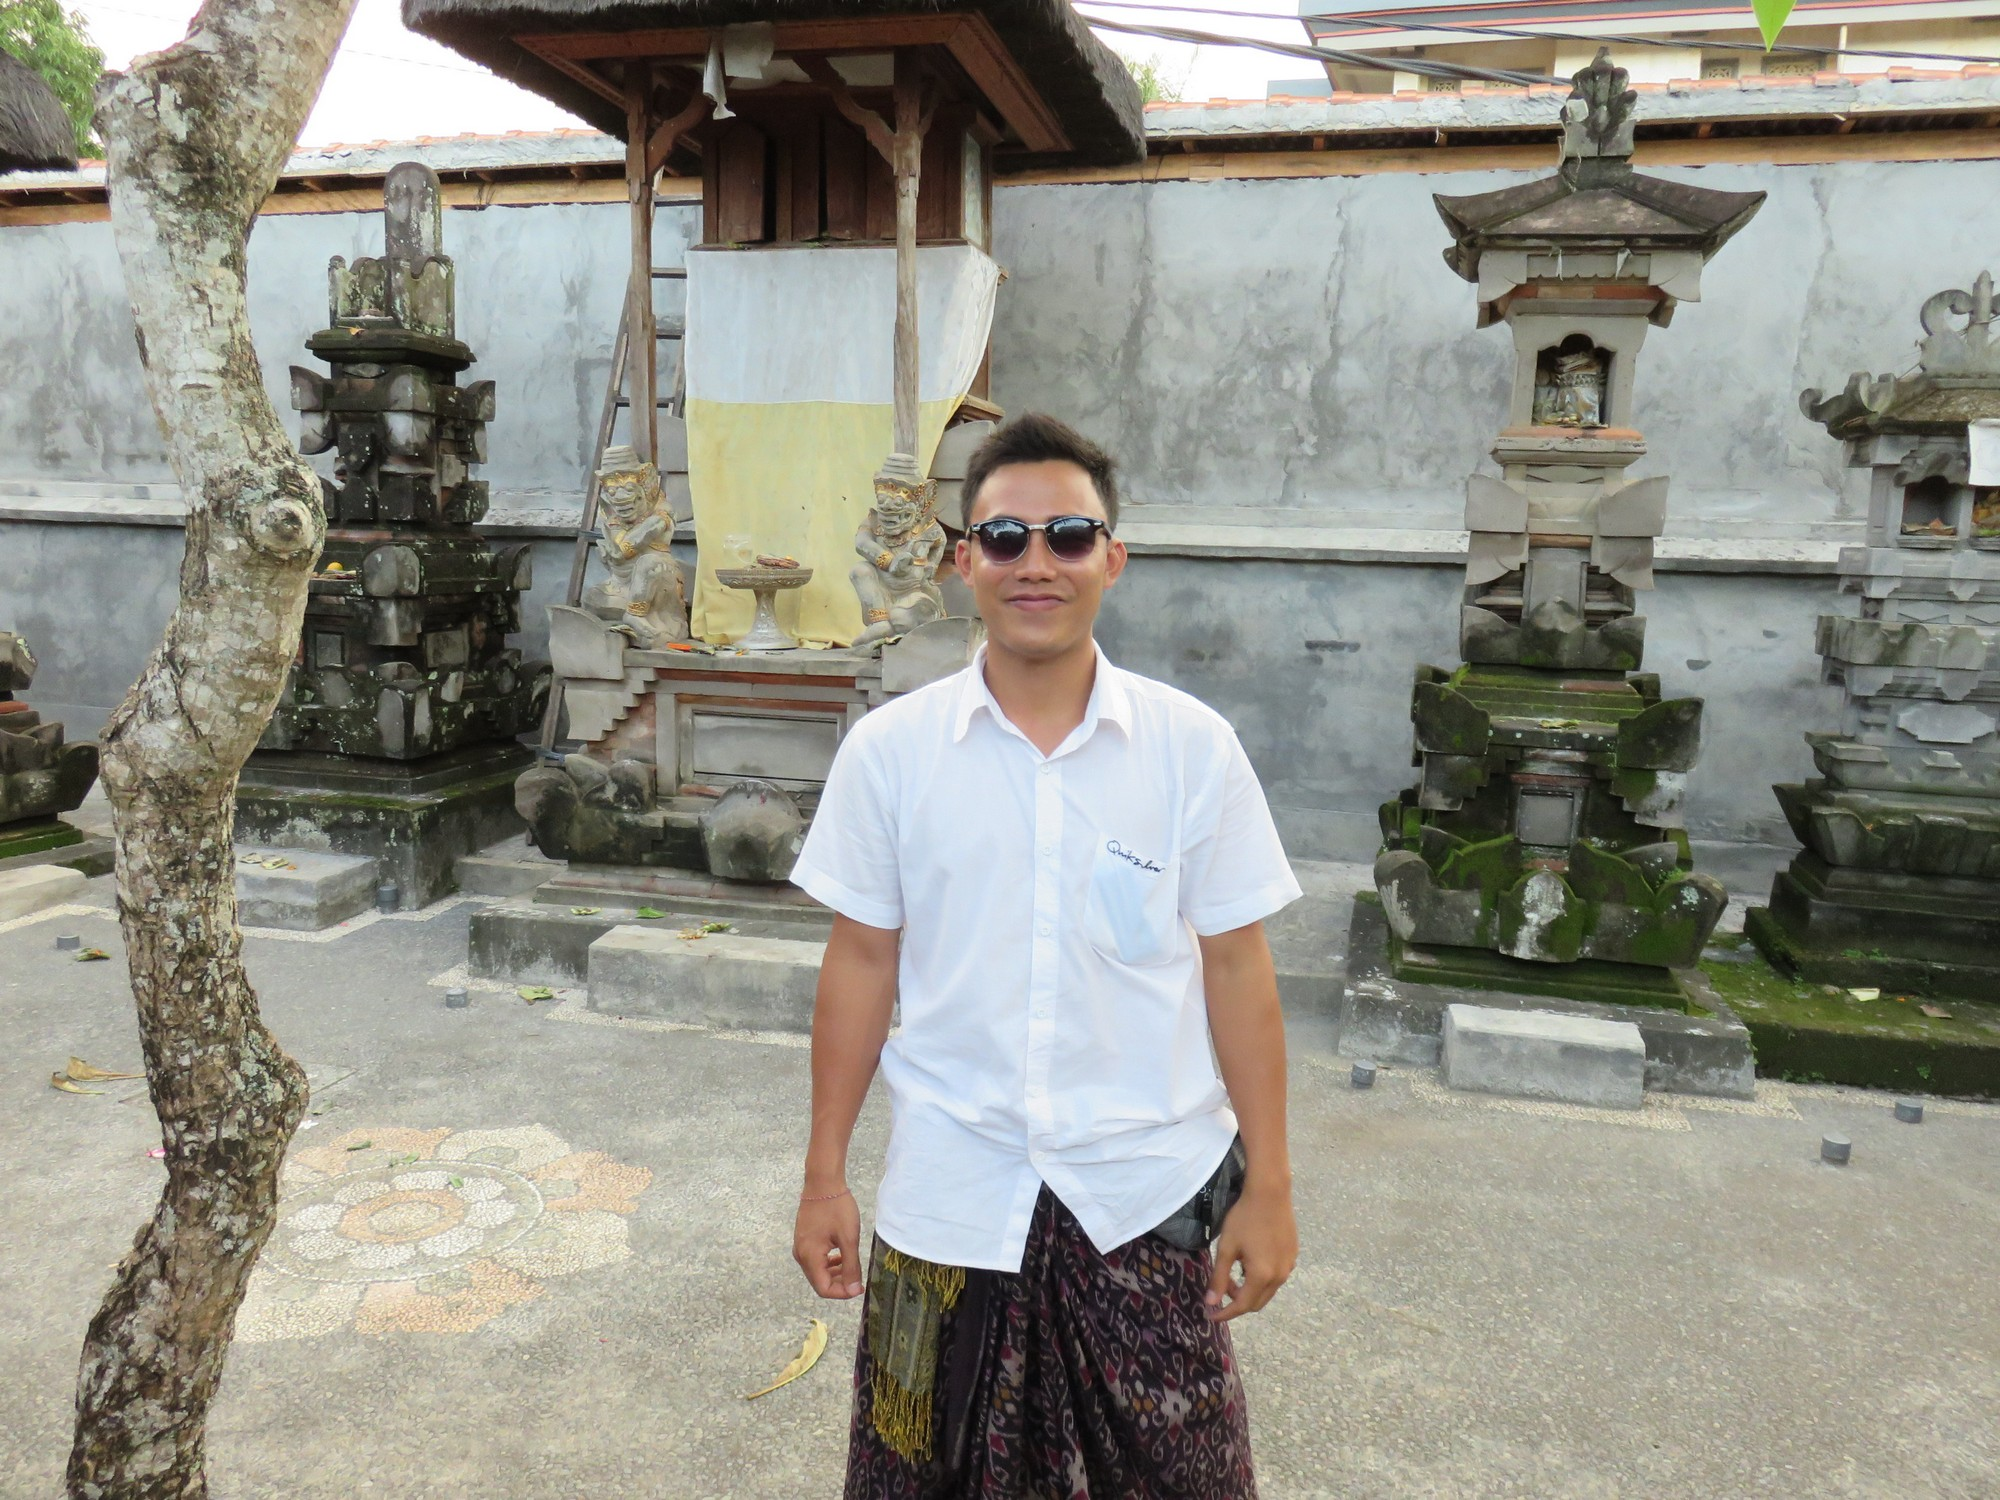 Our amazing guide Lionk in his family temple